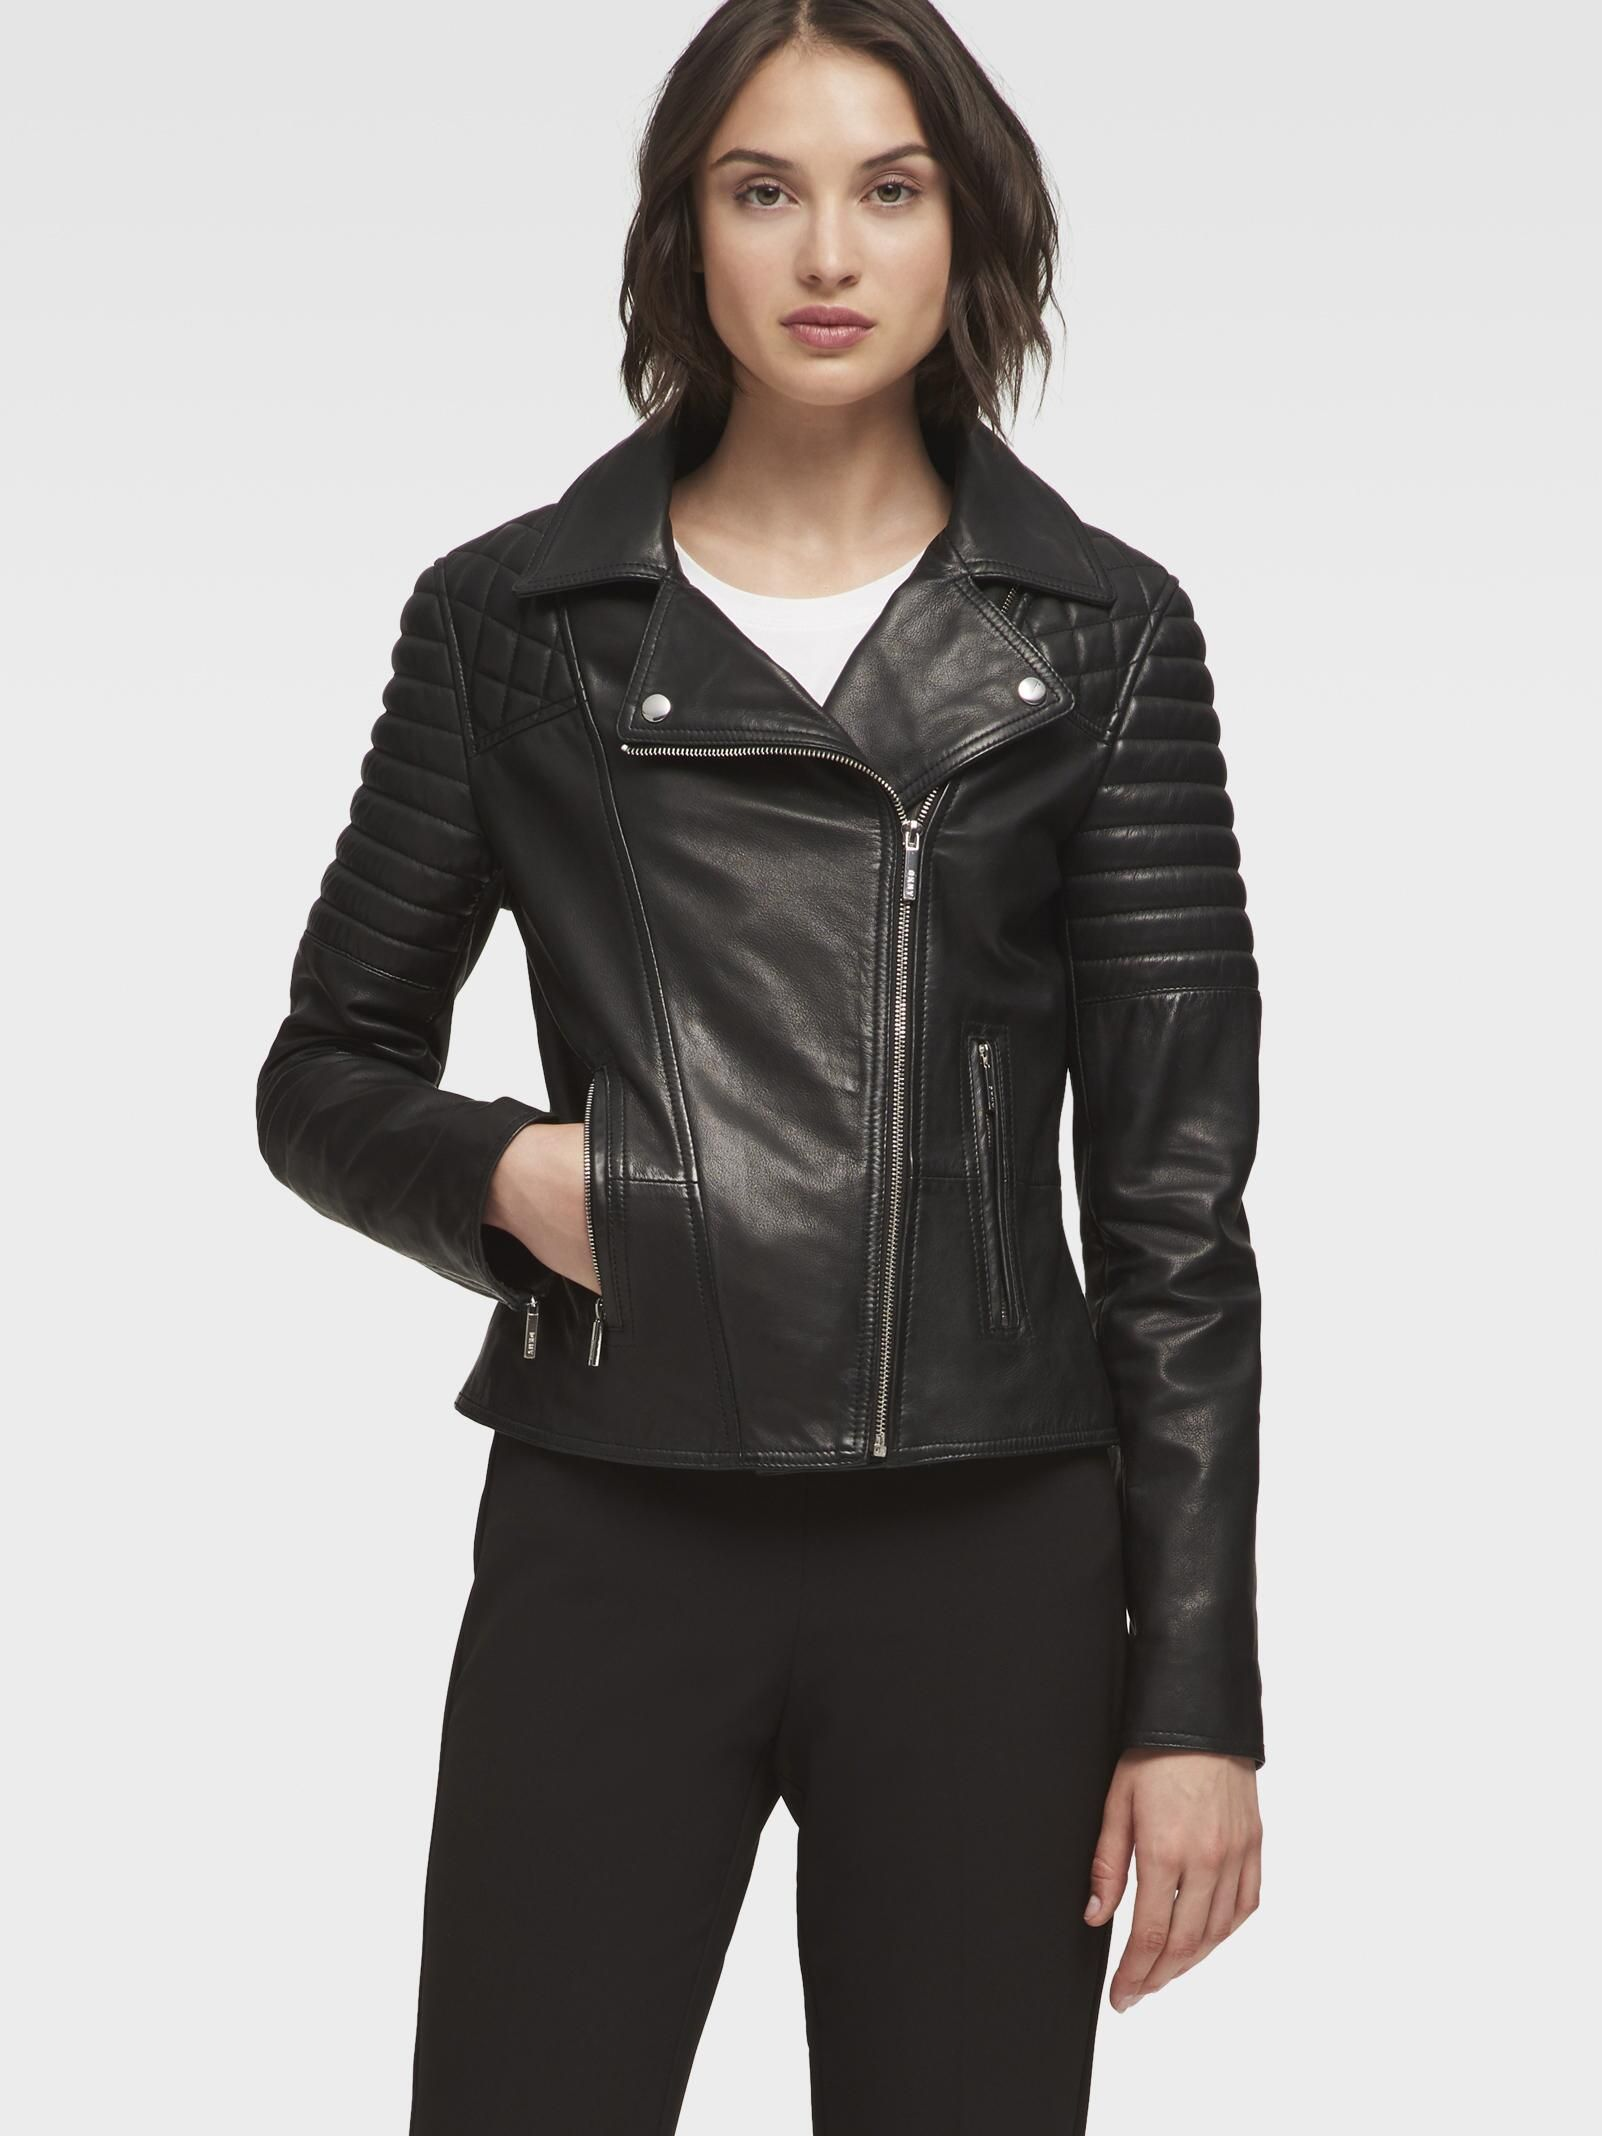 Leather Jacket With Quilted Shoulder Dkny Jackets Outerwear Sale Leather Jacket [ 2136 x 1602 Pixel ]